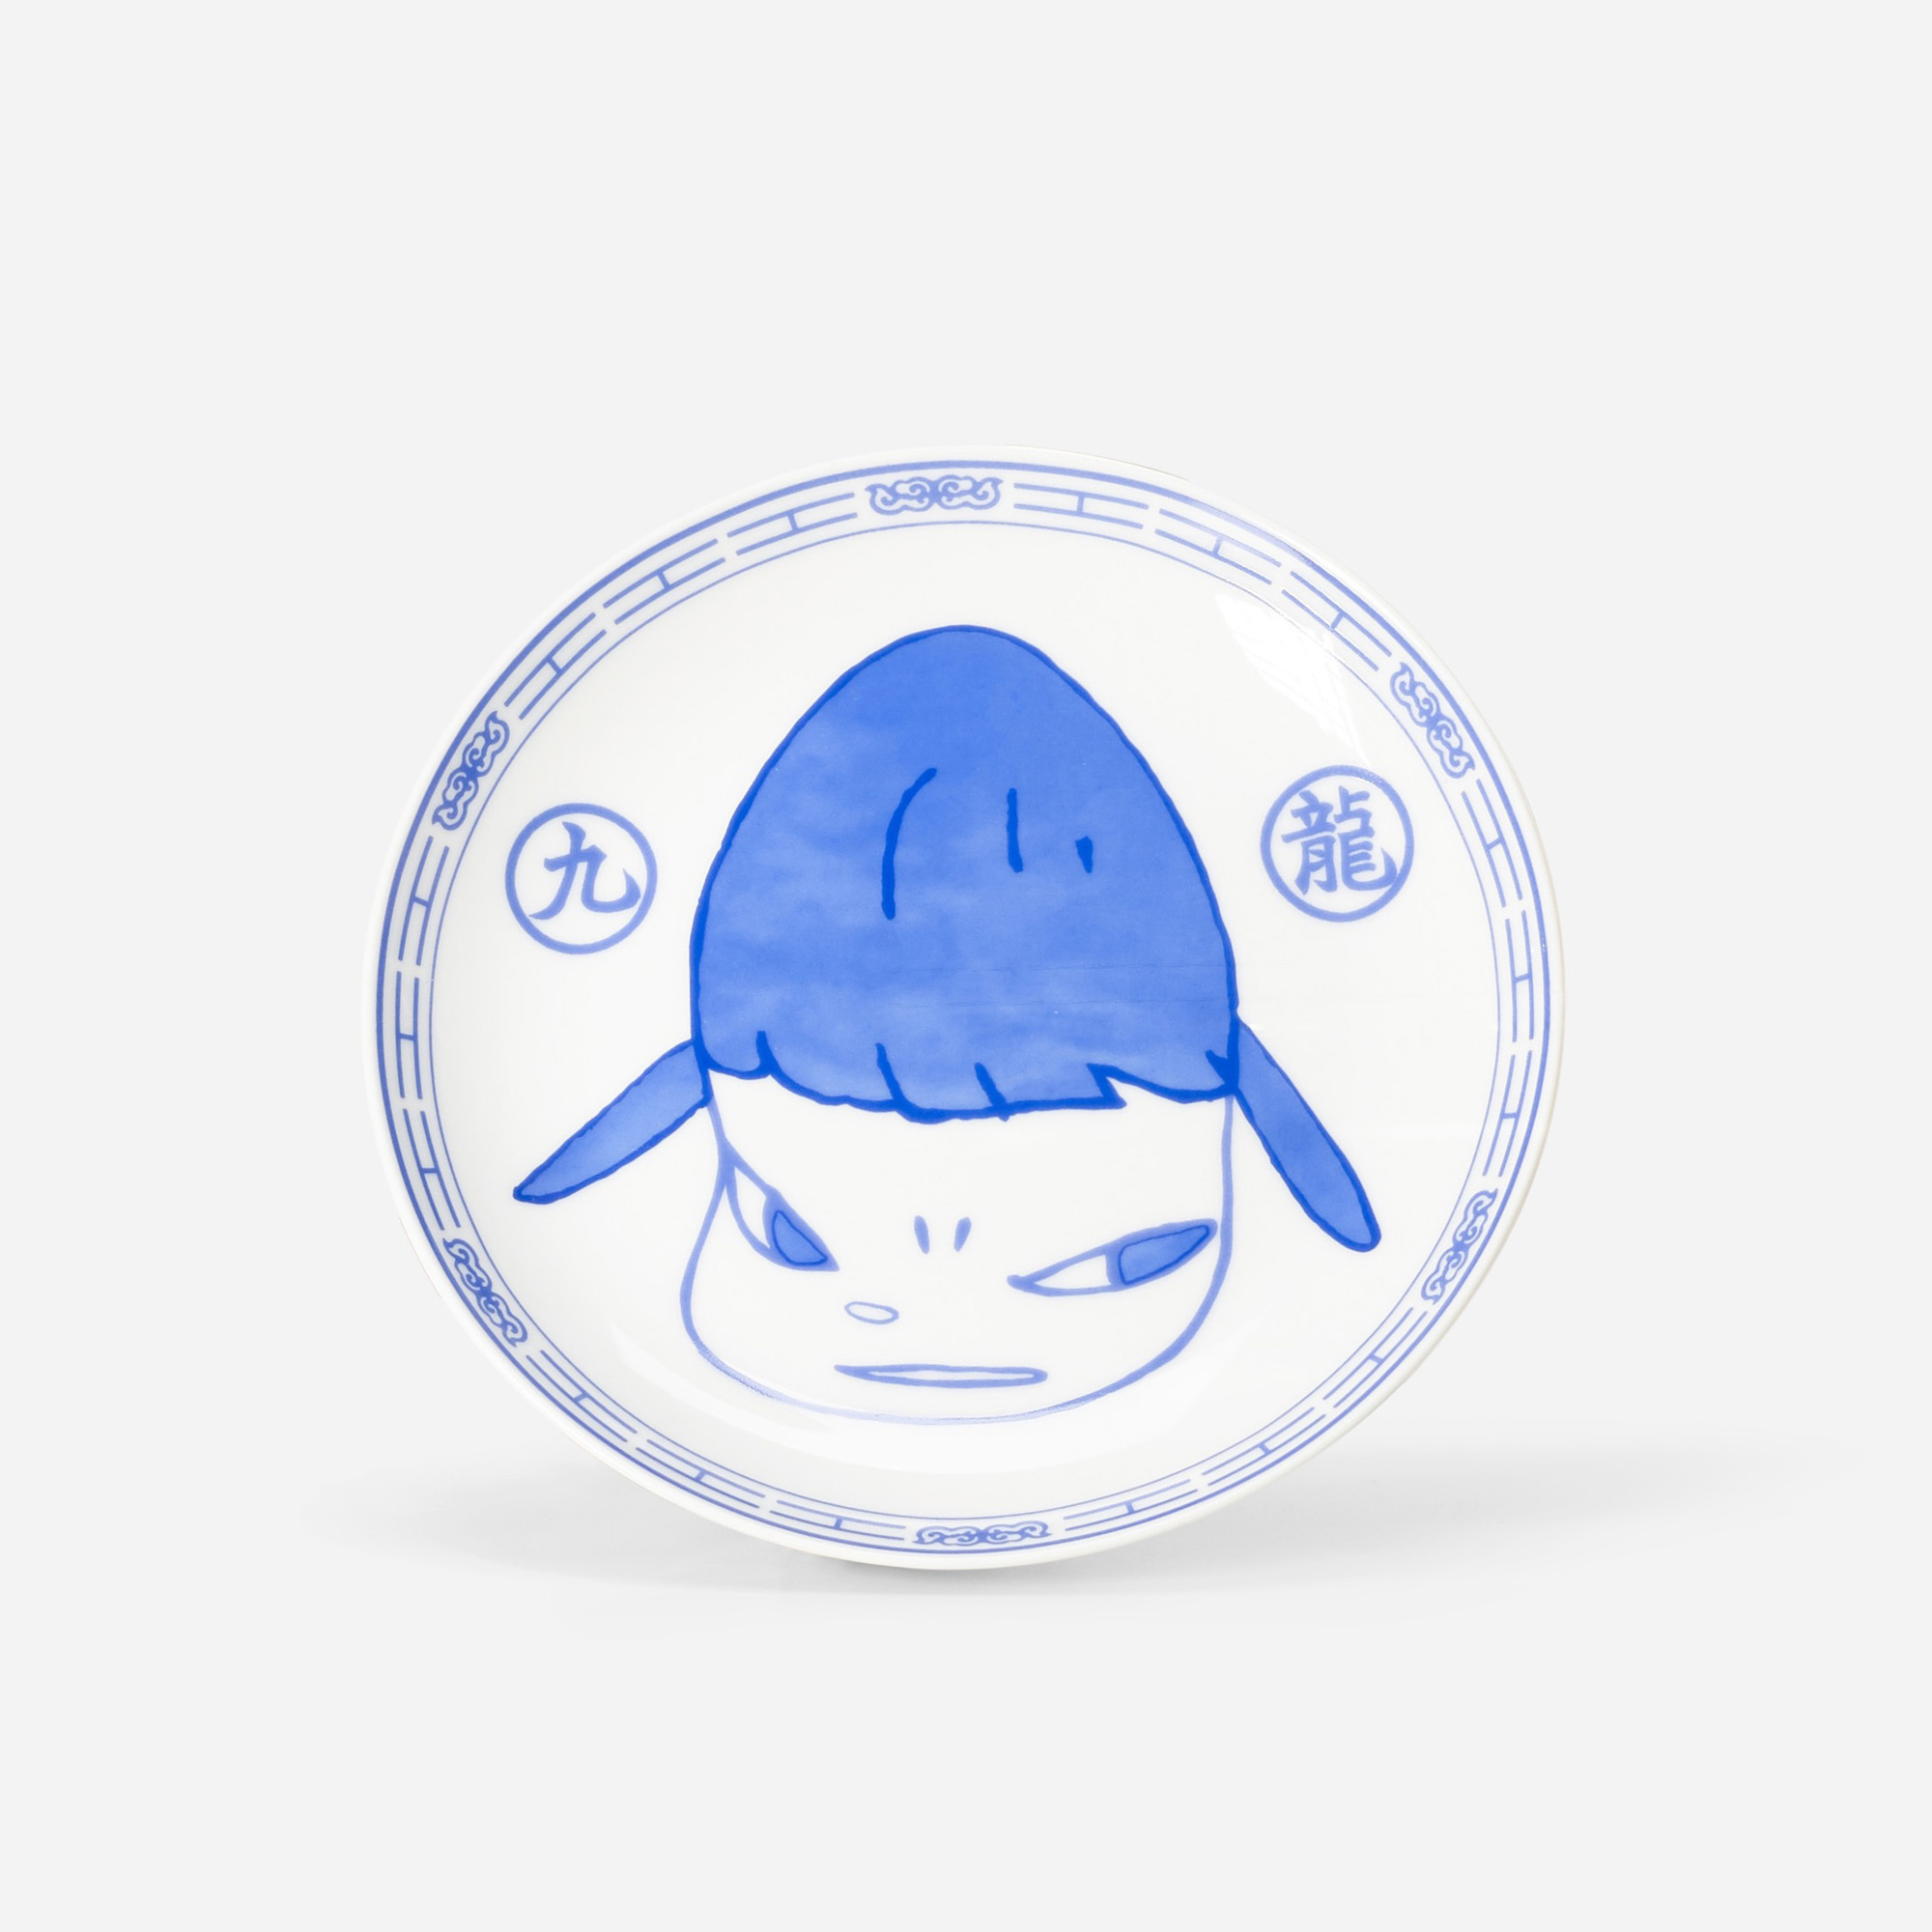 629: Yoshitomo Nara / plate from Life is Only One set (1 of 1)